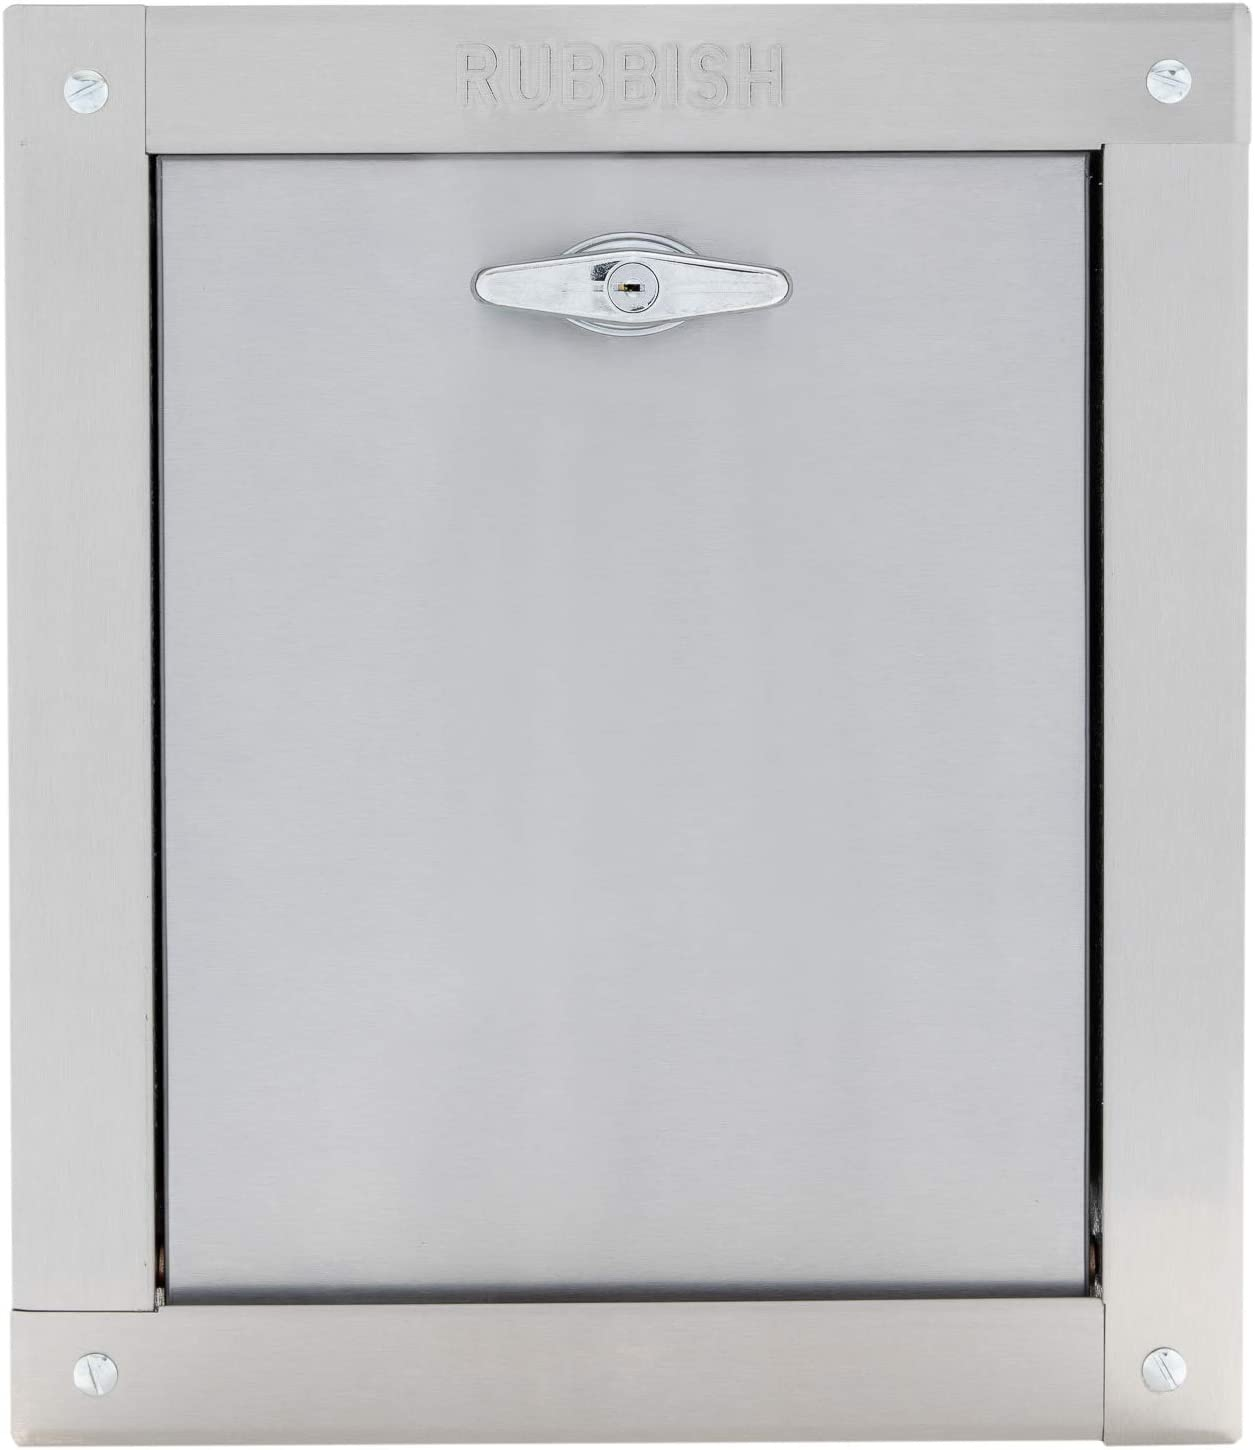 "Midland Style Stainless Steel Trash Chute Door - Noiseless Self Closing Bottom Hinged Fire Rated & UL Approved (12"" X 15"")"